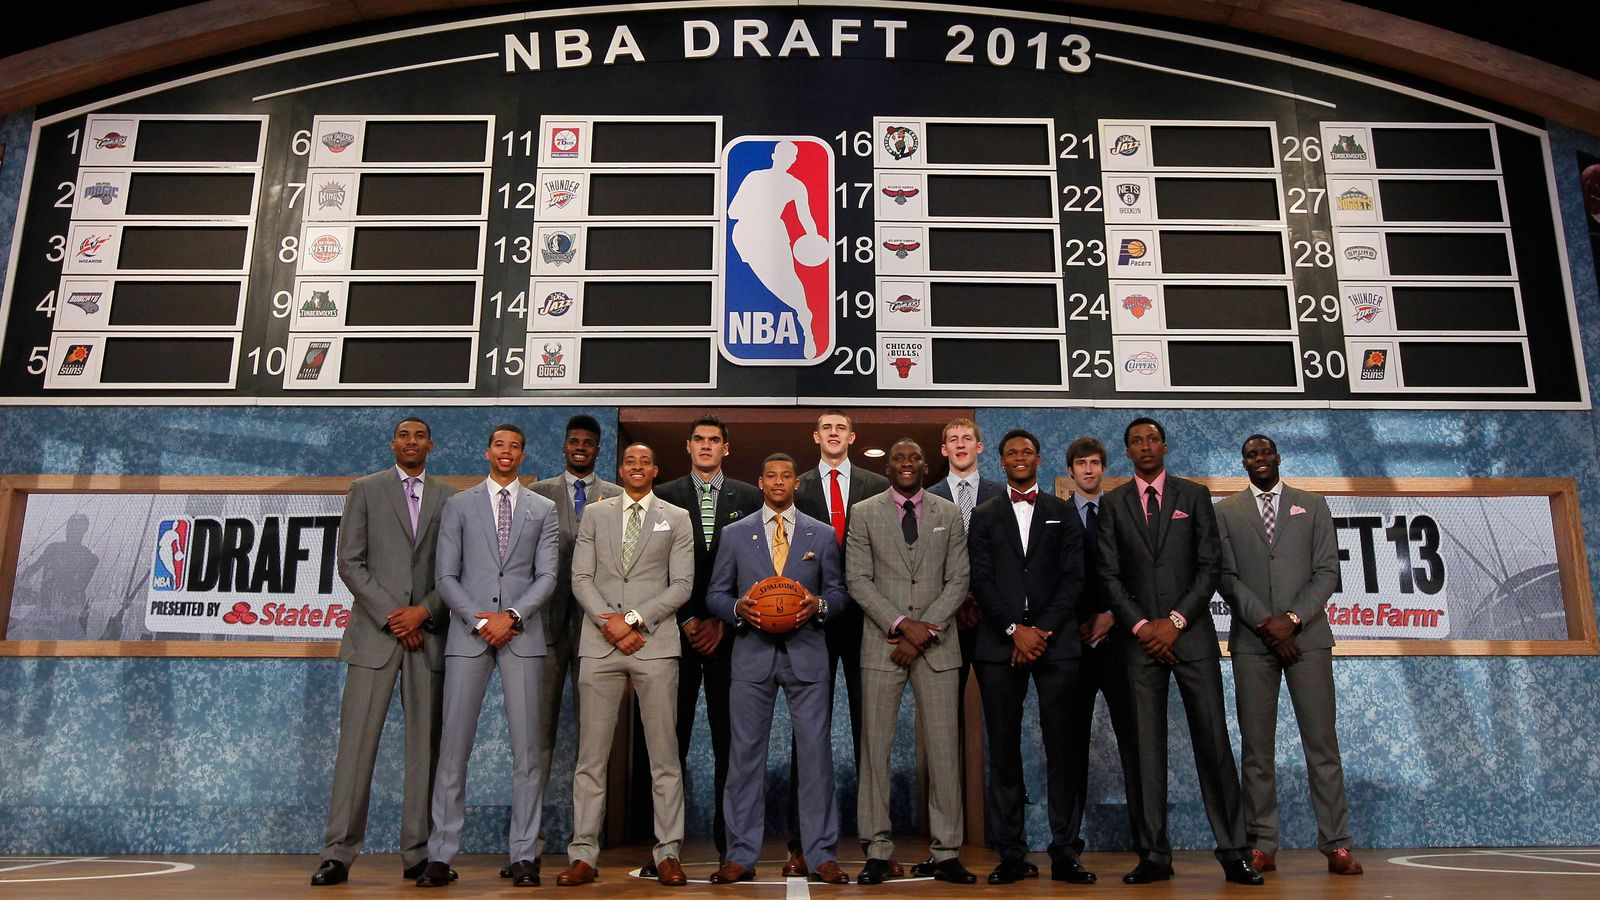 NBA Draft 2013 results: Every pick from Thursday night ...